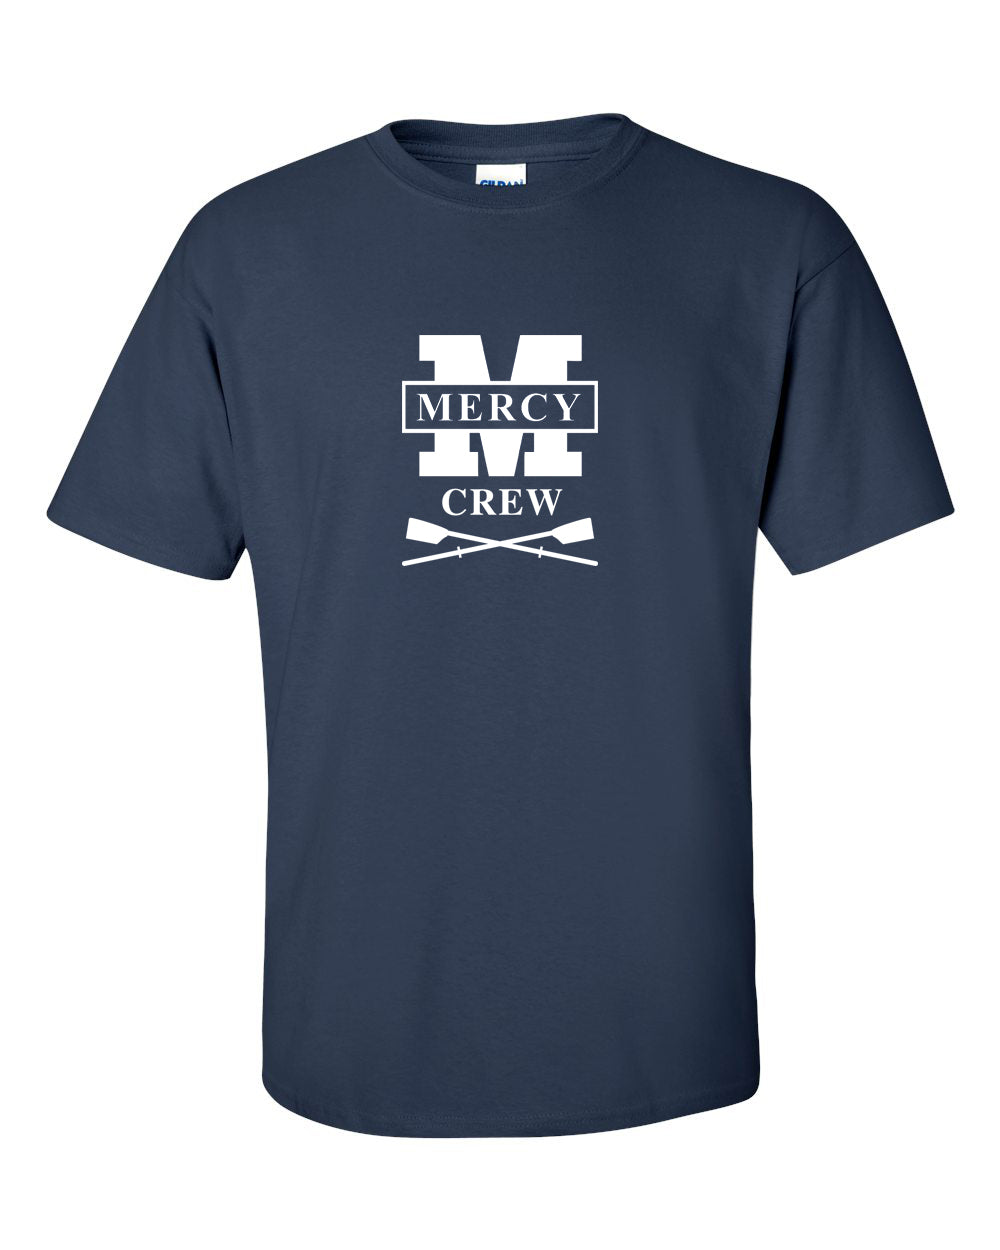 100% Cotton Mercy Crew Men's Team Spirit T-Shirt